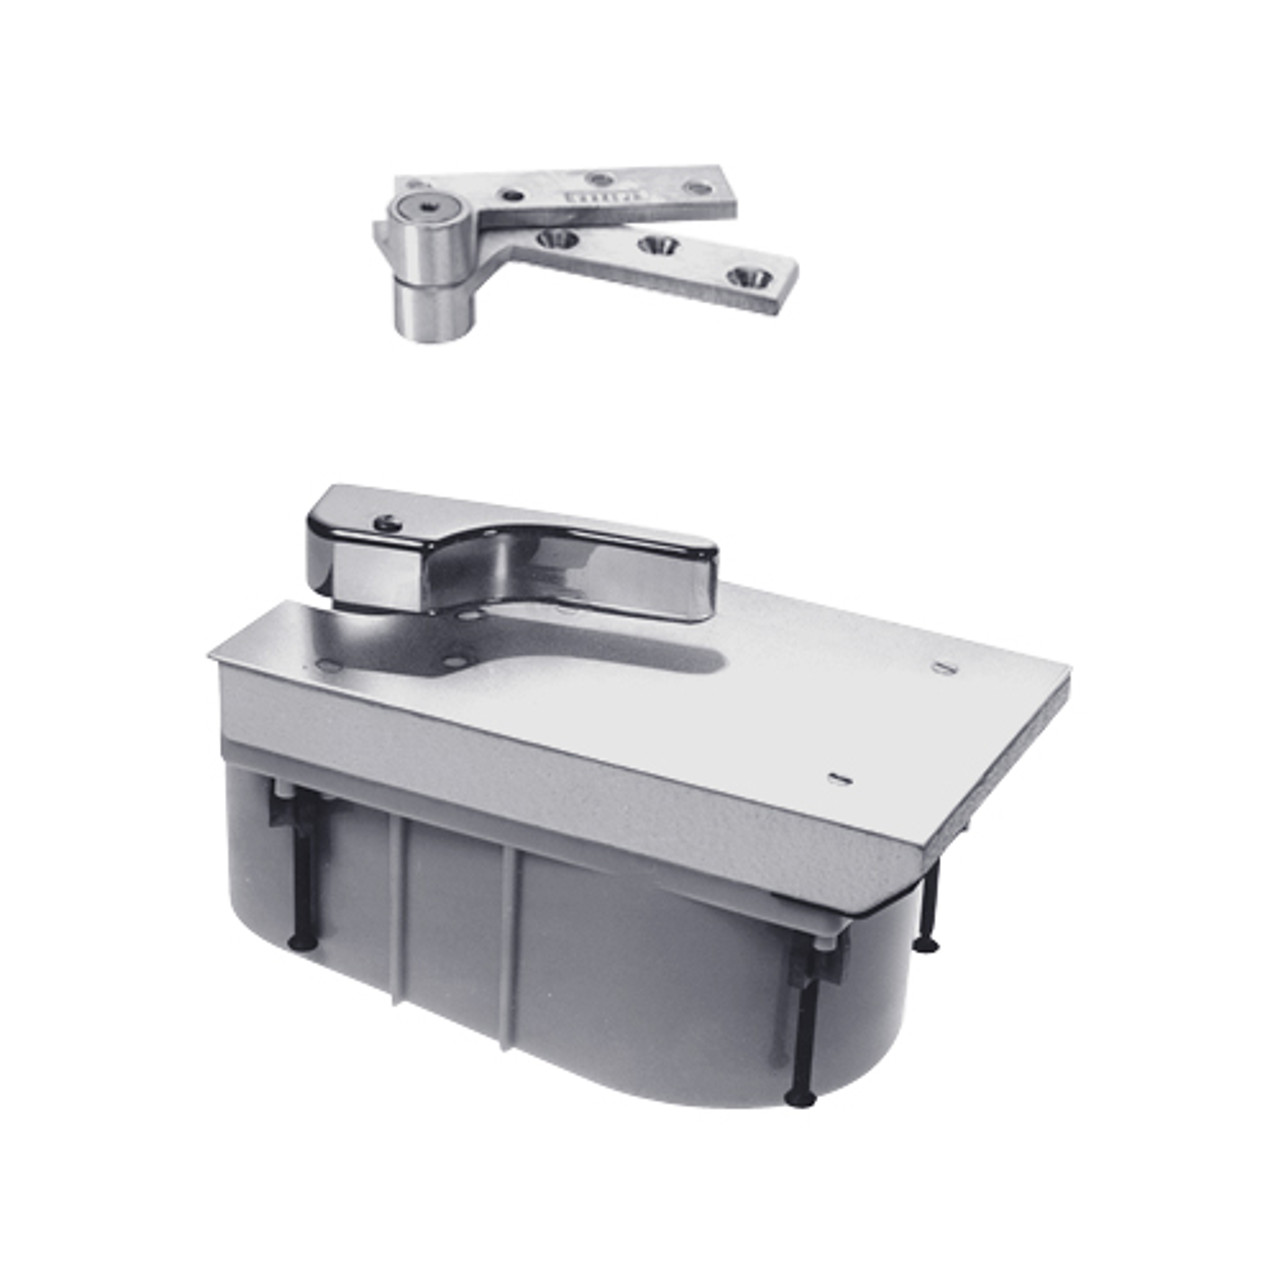 PHQ27-90S-RH-626 Rixson 27 Series Heavy Duty Quick Install Offset Hung Floor Closer in Satin Chrome Finish